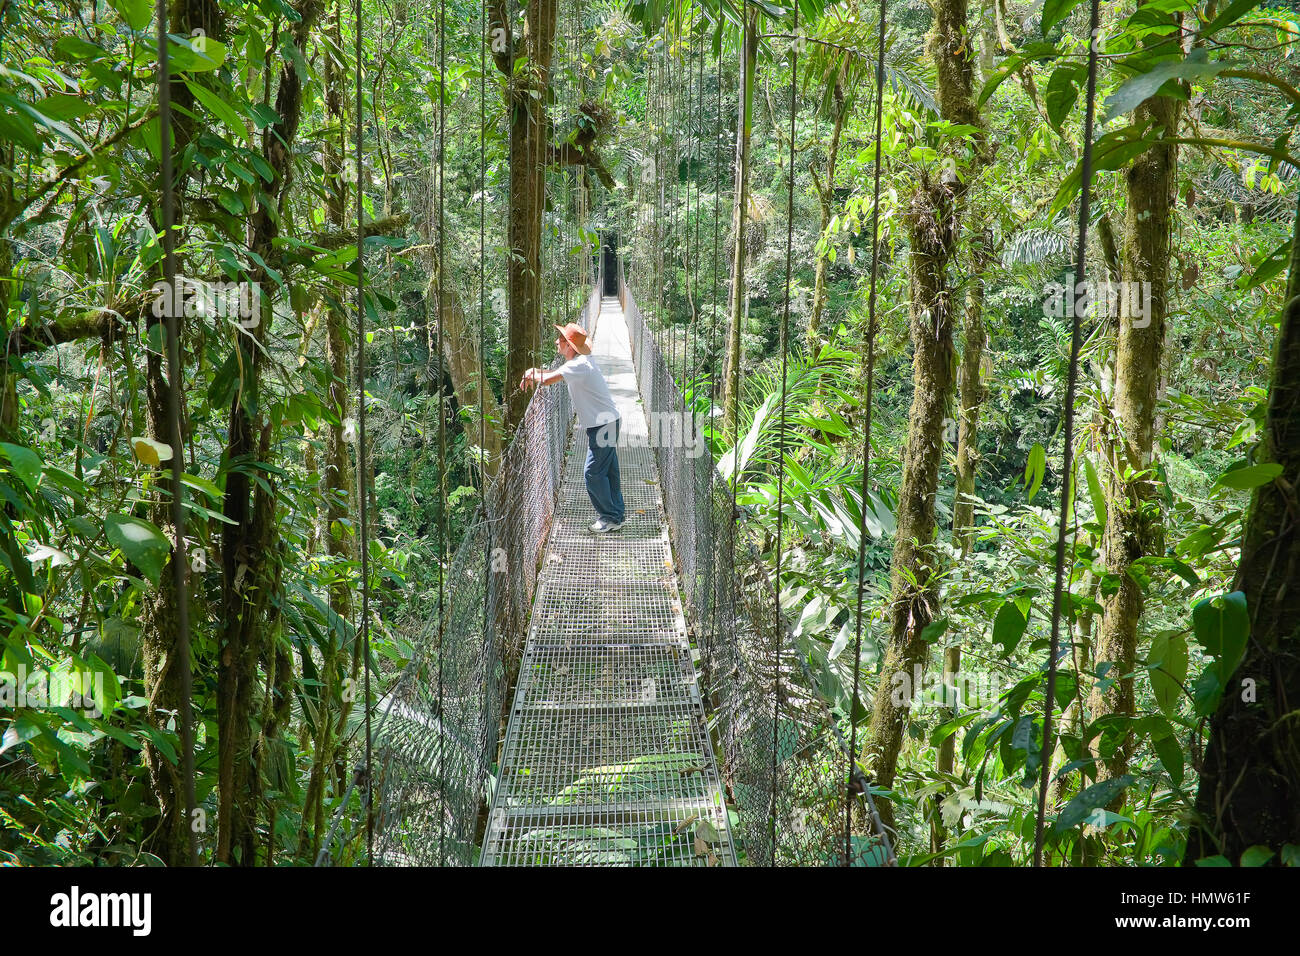 Man standing on hanging bridge in rainforest, La Fortuna, Costa Rica - Stock Image